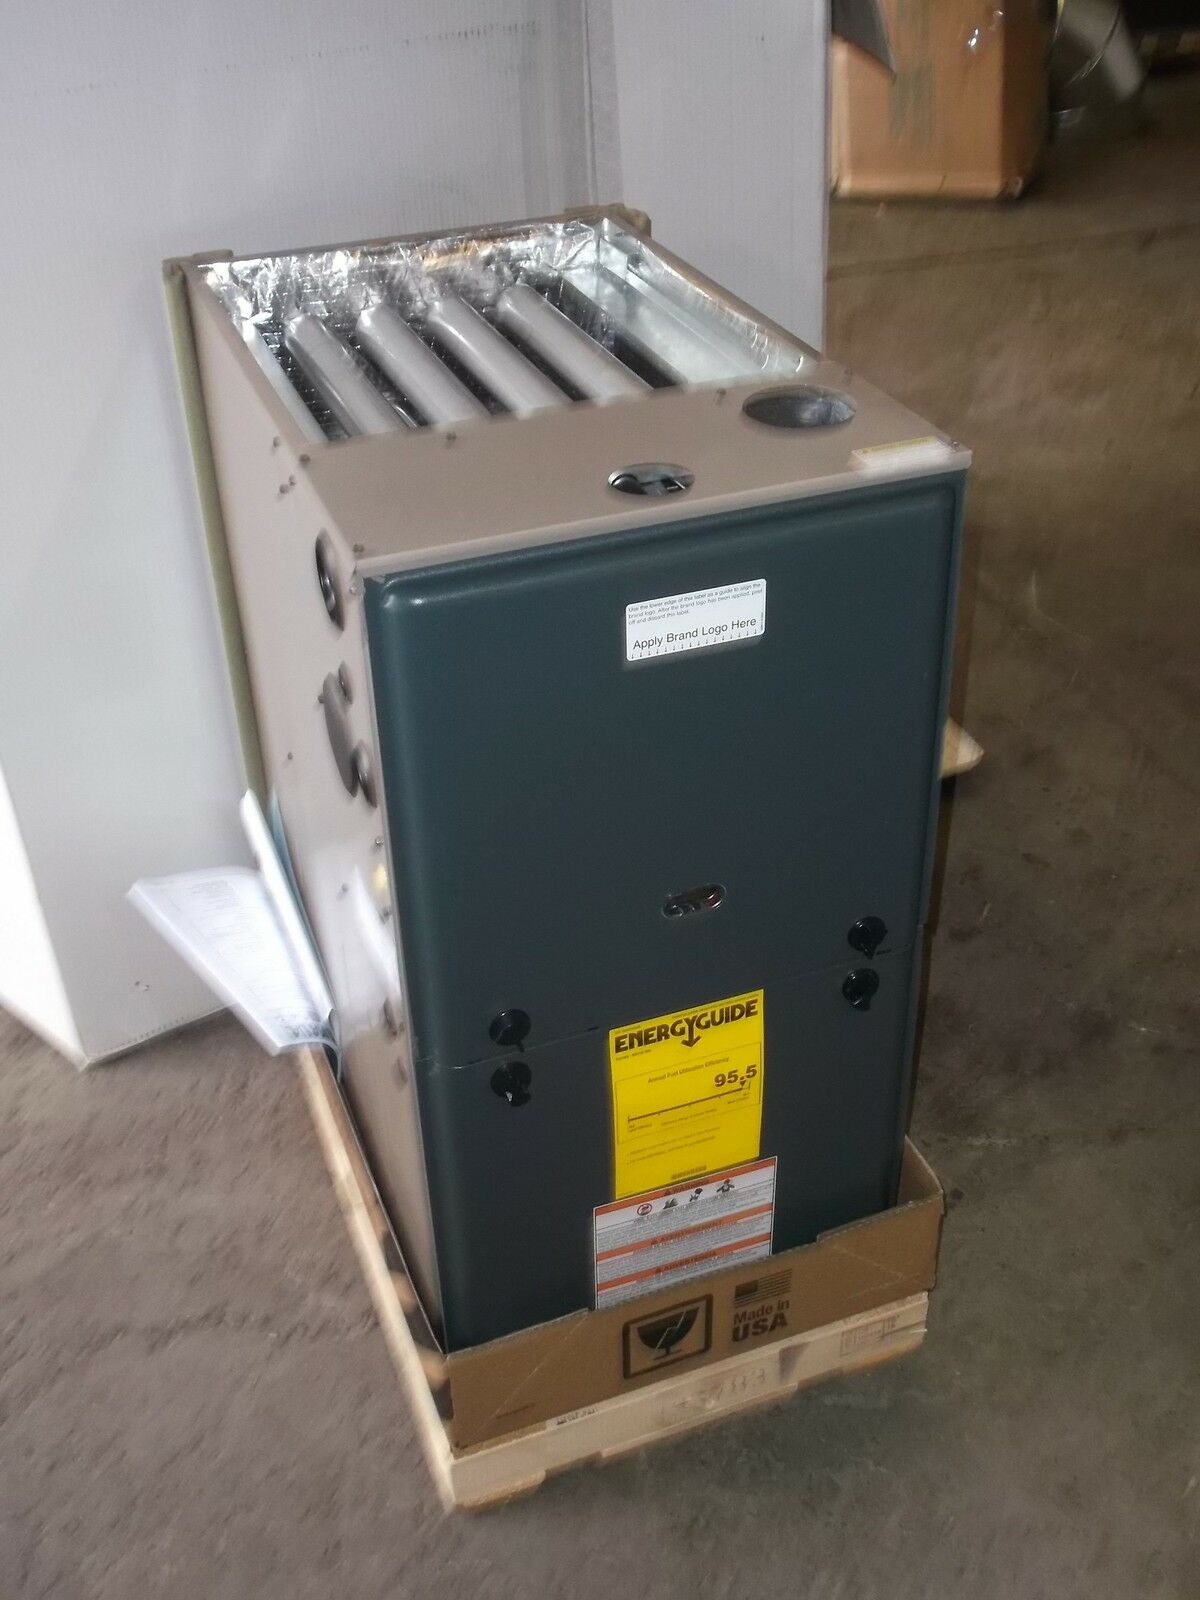 York Evcon 1 Stg Multiposition 100 000 Btu 95 Efficient Gas Furnace Honeywell L4064b Wiring Diagram Custom Norton Secured Powered By Verisign